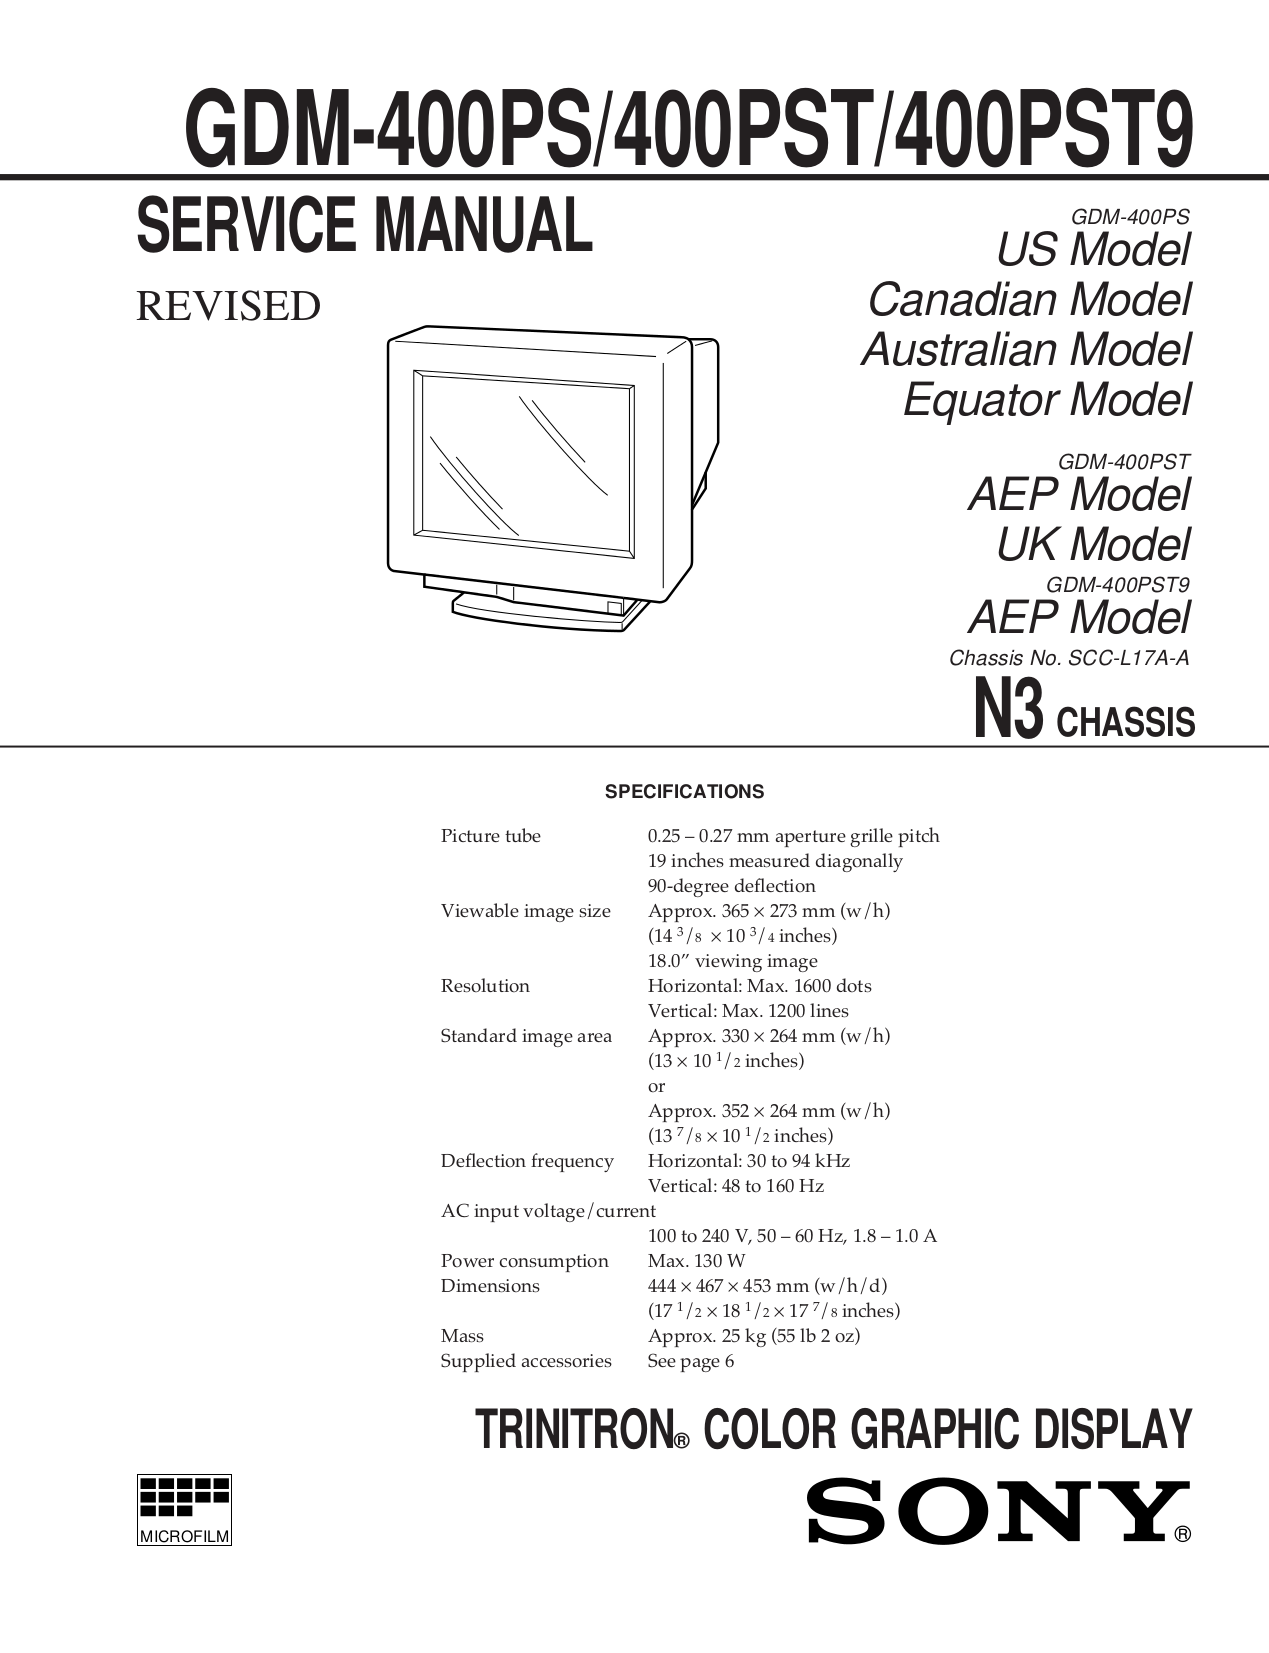 pdf for Sony Monitor GDM-400PS manual